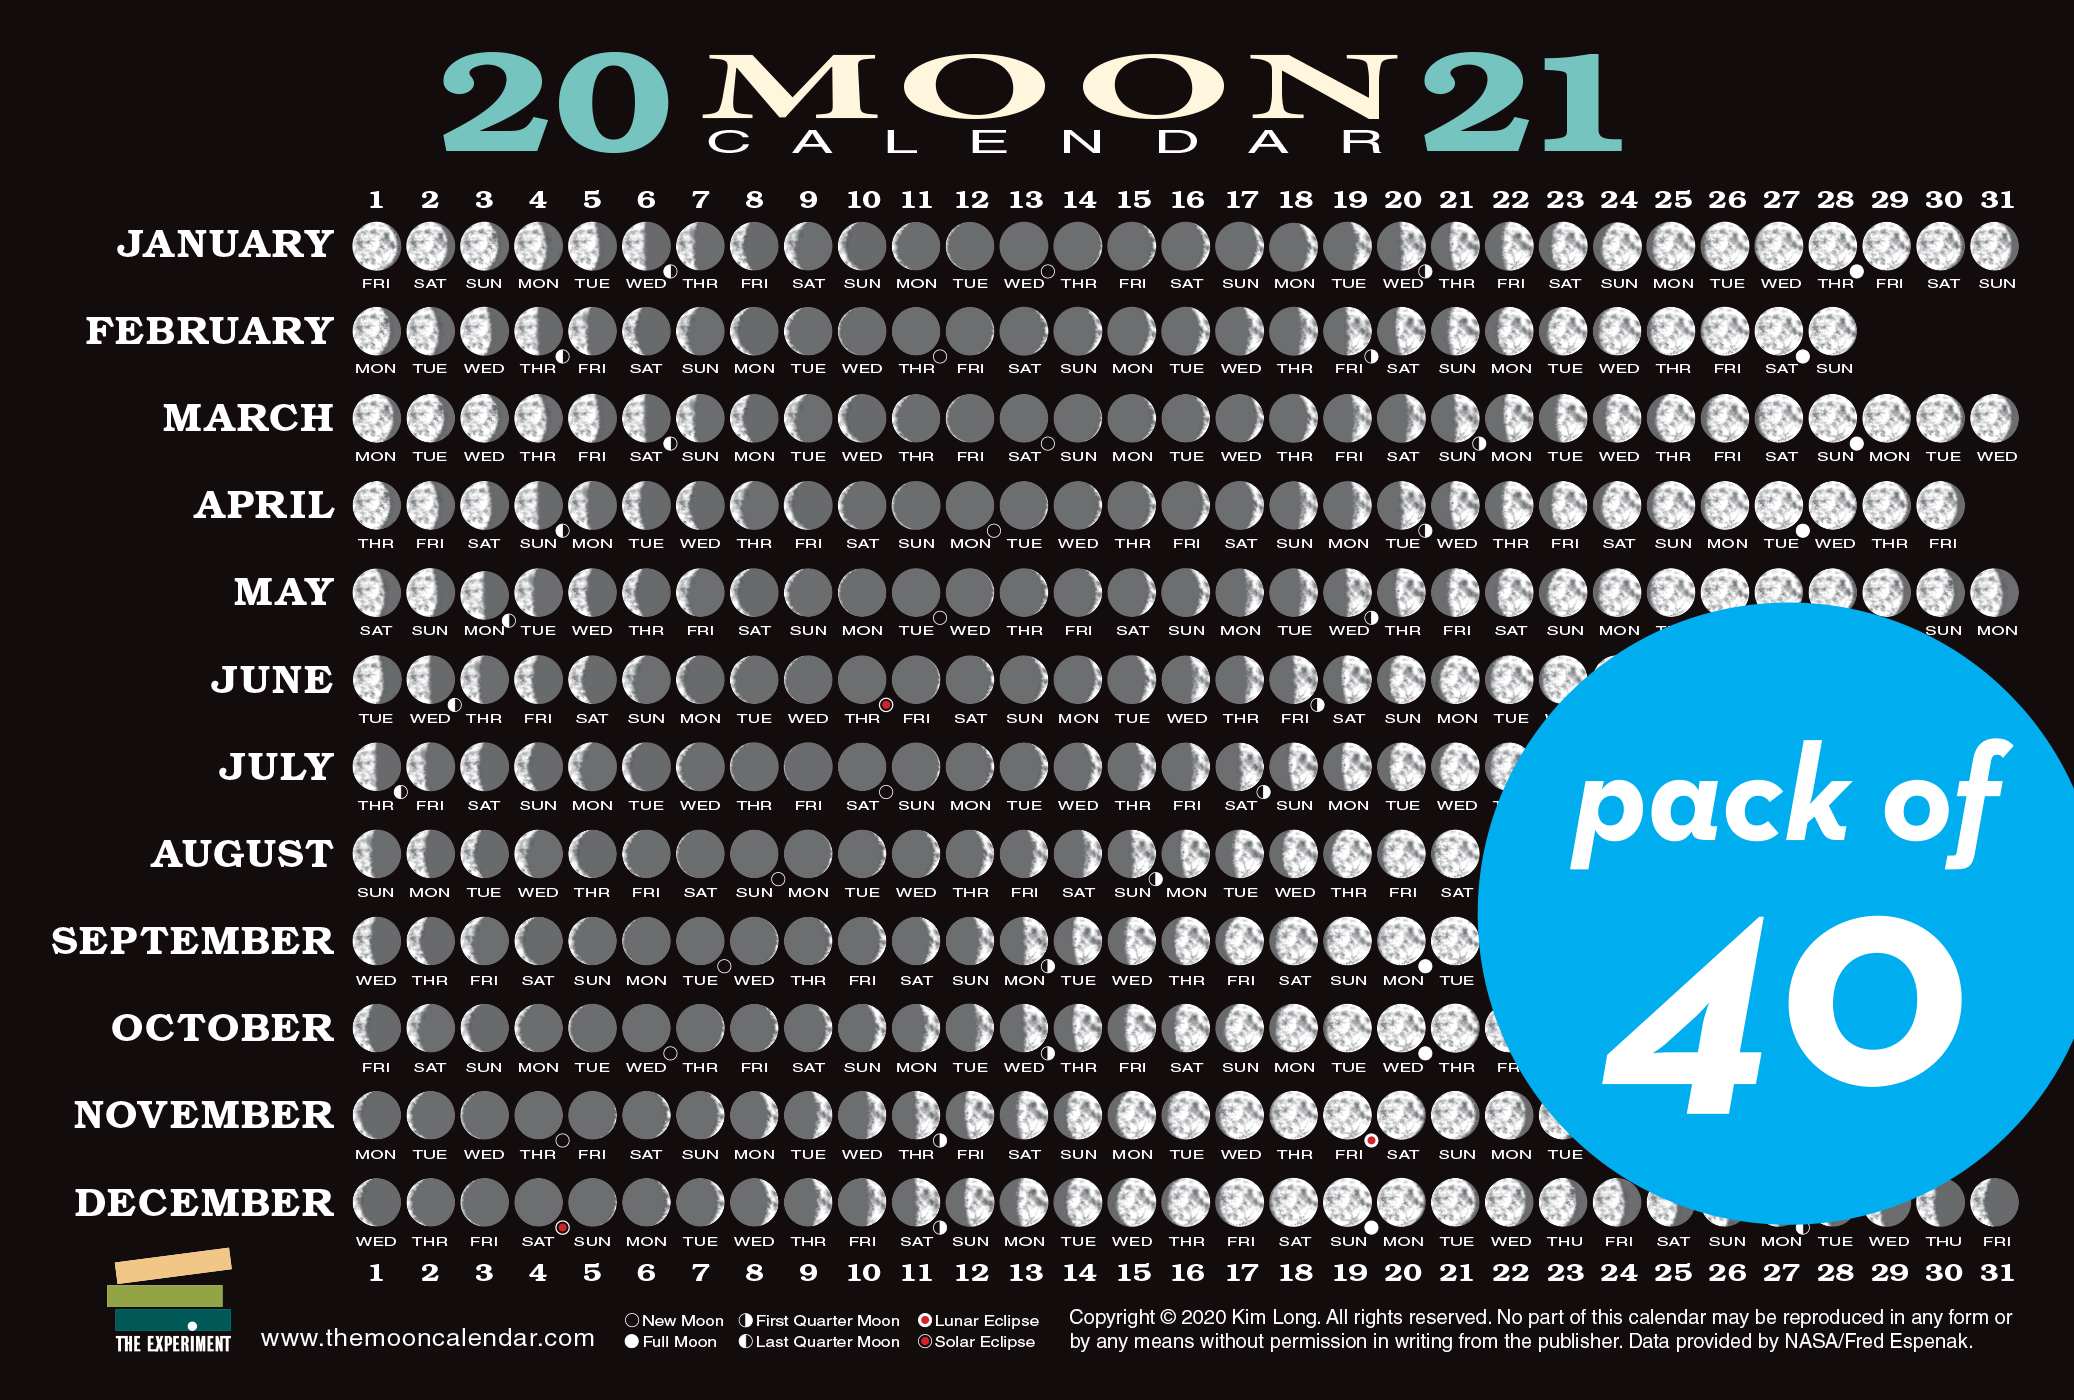 2021 Moon Calendar Card (40 pack)